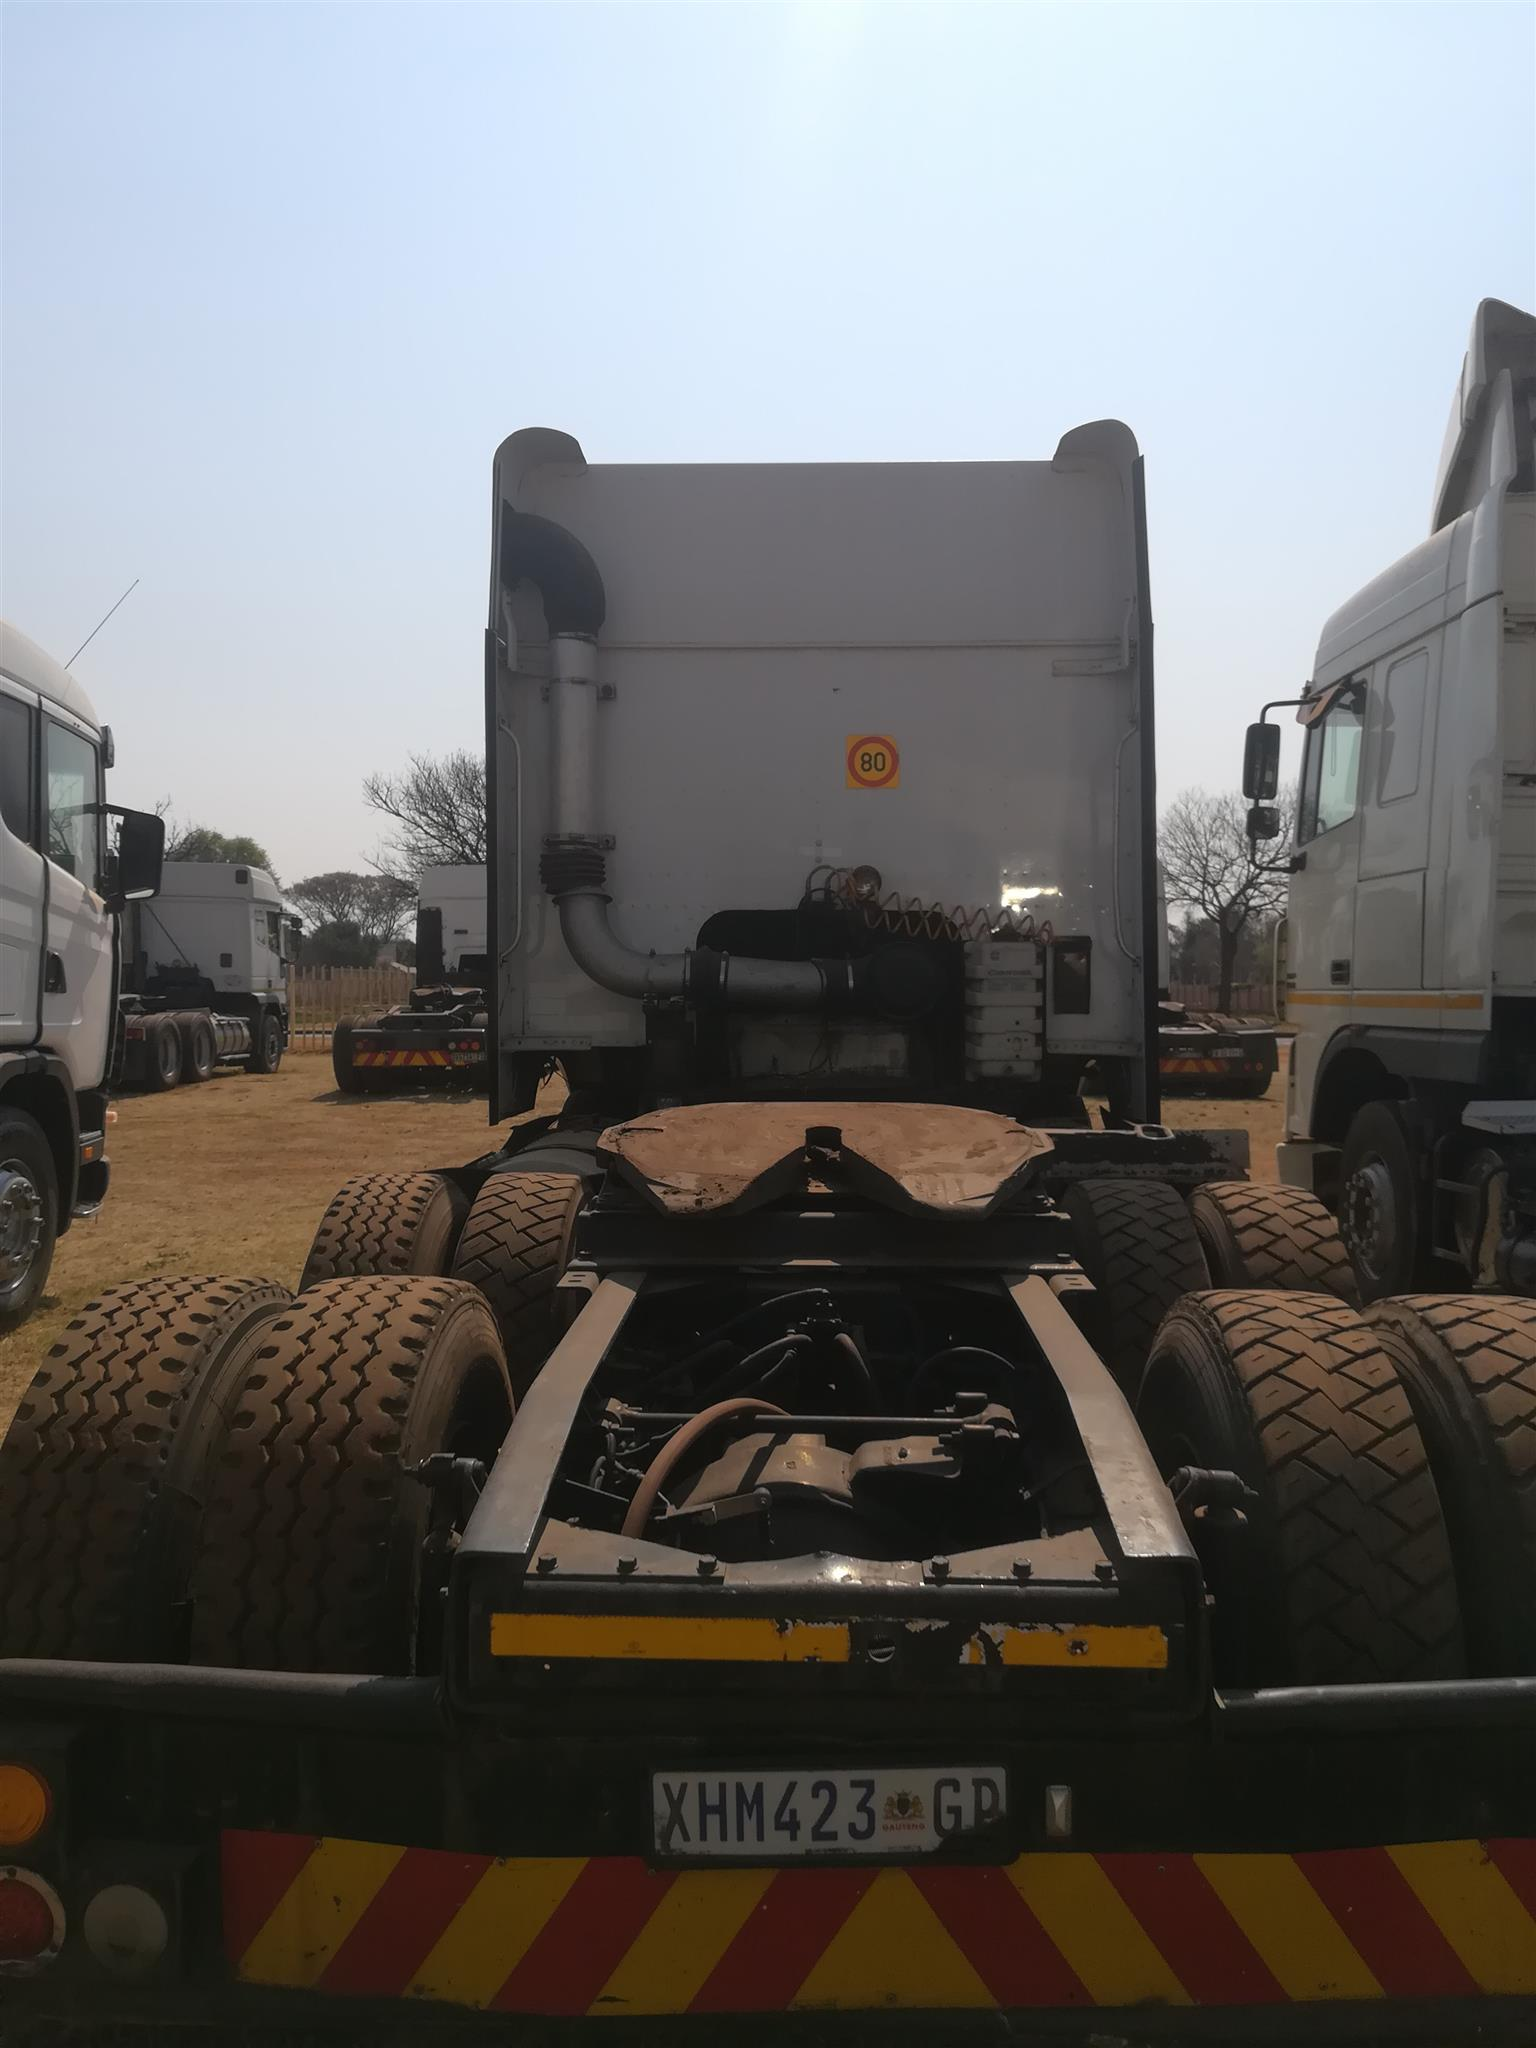 come see for your self truck and trailer